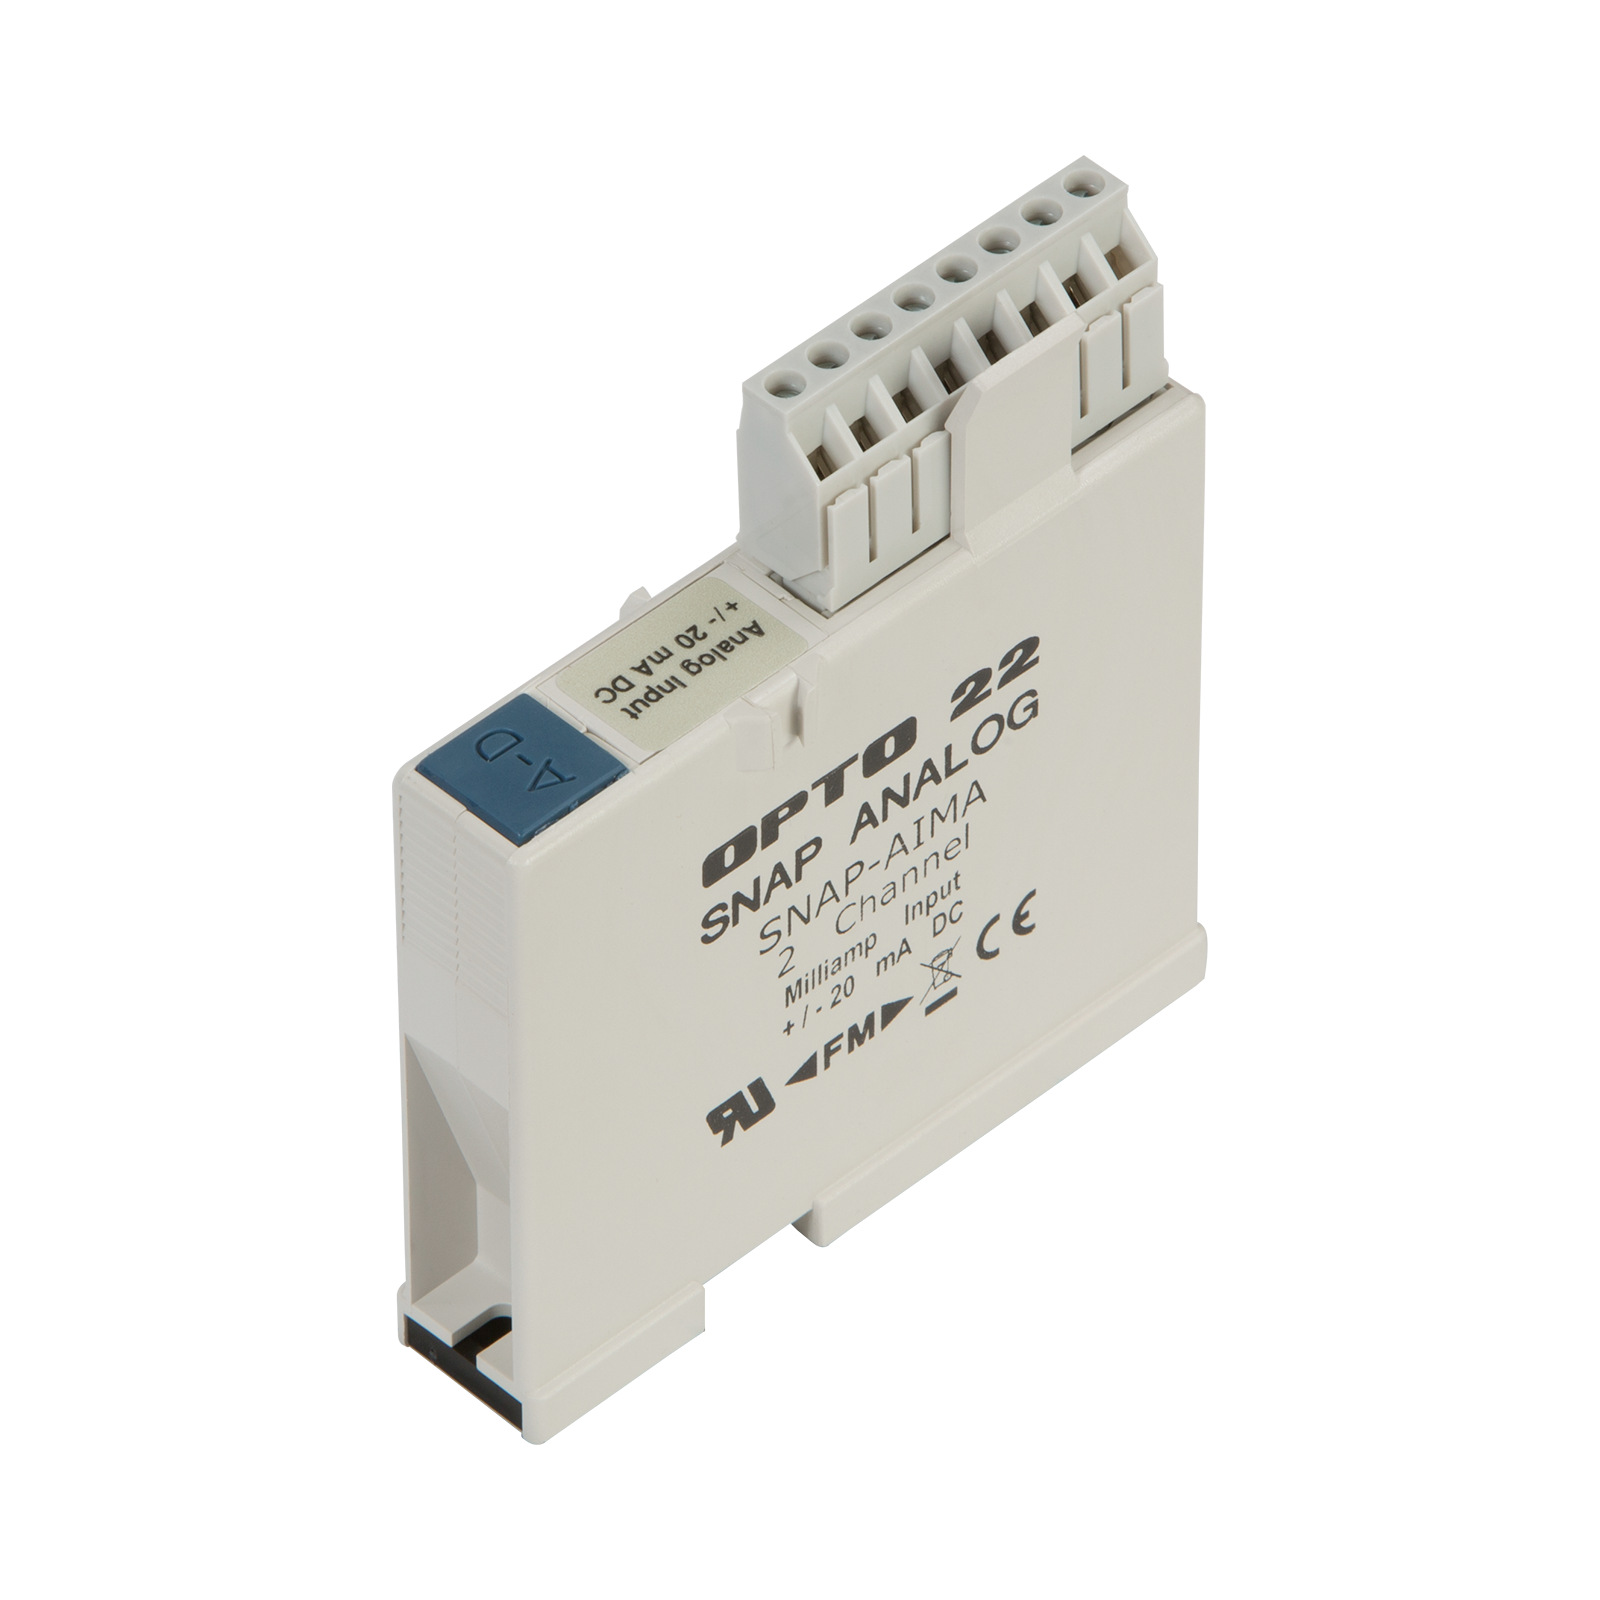 opto22 snap aima snap 2 ch 20ma to 20ma analog current input rh opto22 com Relay  Wiring Diagram Lighted Rocker Switch Wiring Diagram